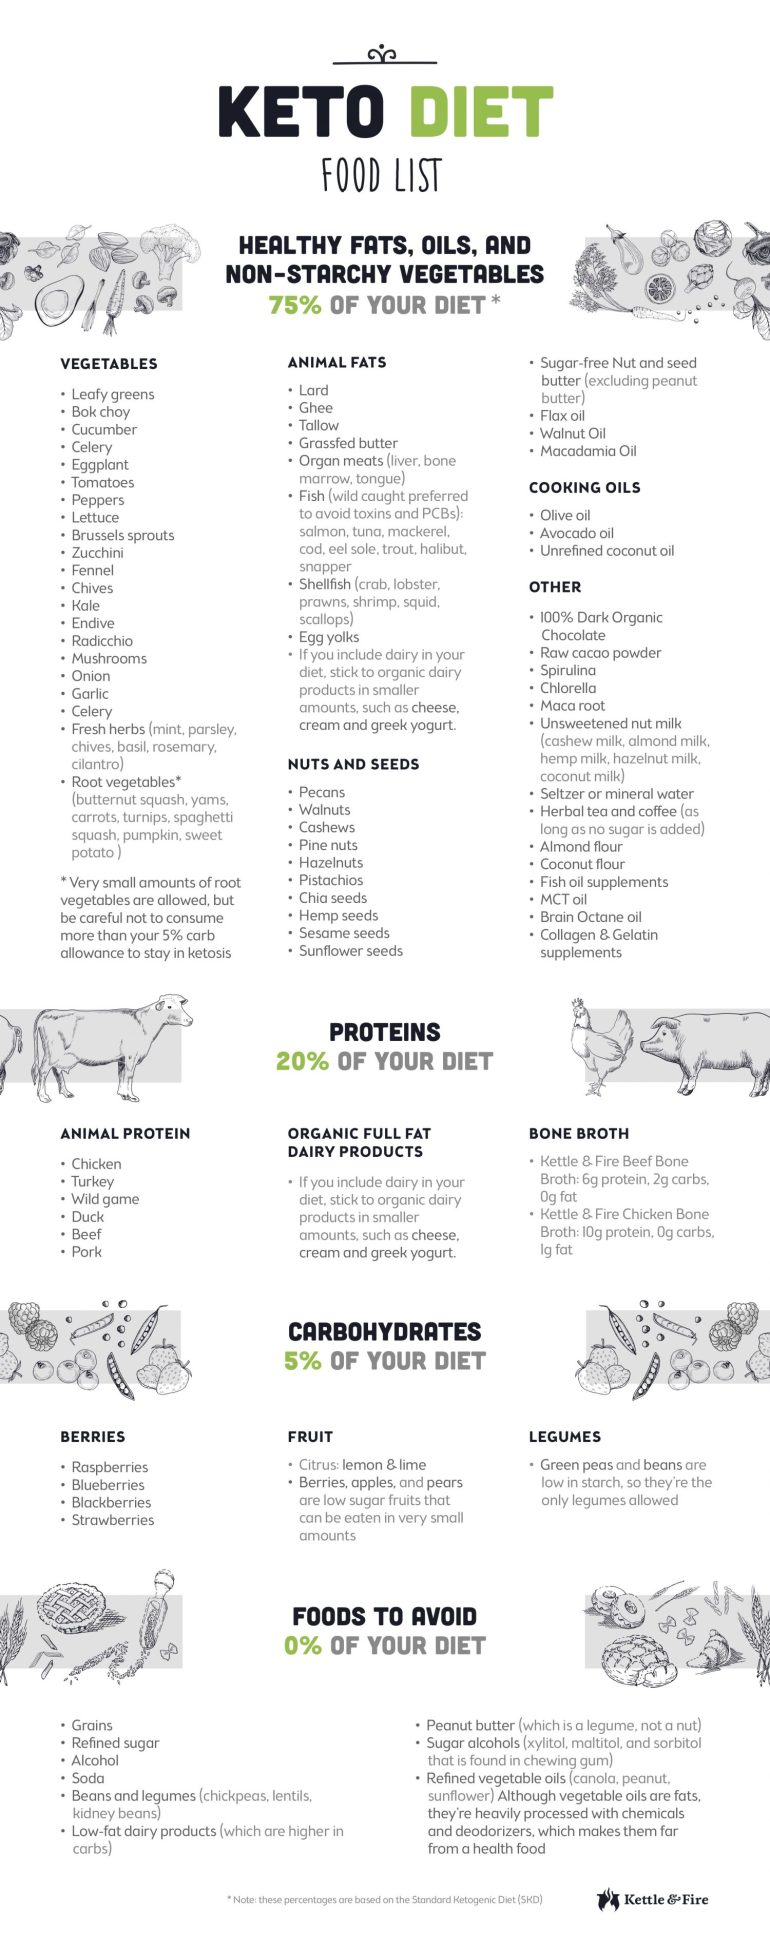 The Ultimate Keto Diet Beginner's Guide & Grocery List #keto #lowcarb #ketodiet #ketogenic #ketodinner #ketofoodlist #ketogrocerylist #loseweightfastandeasy